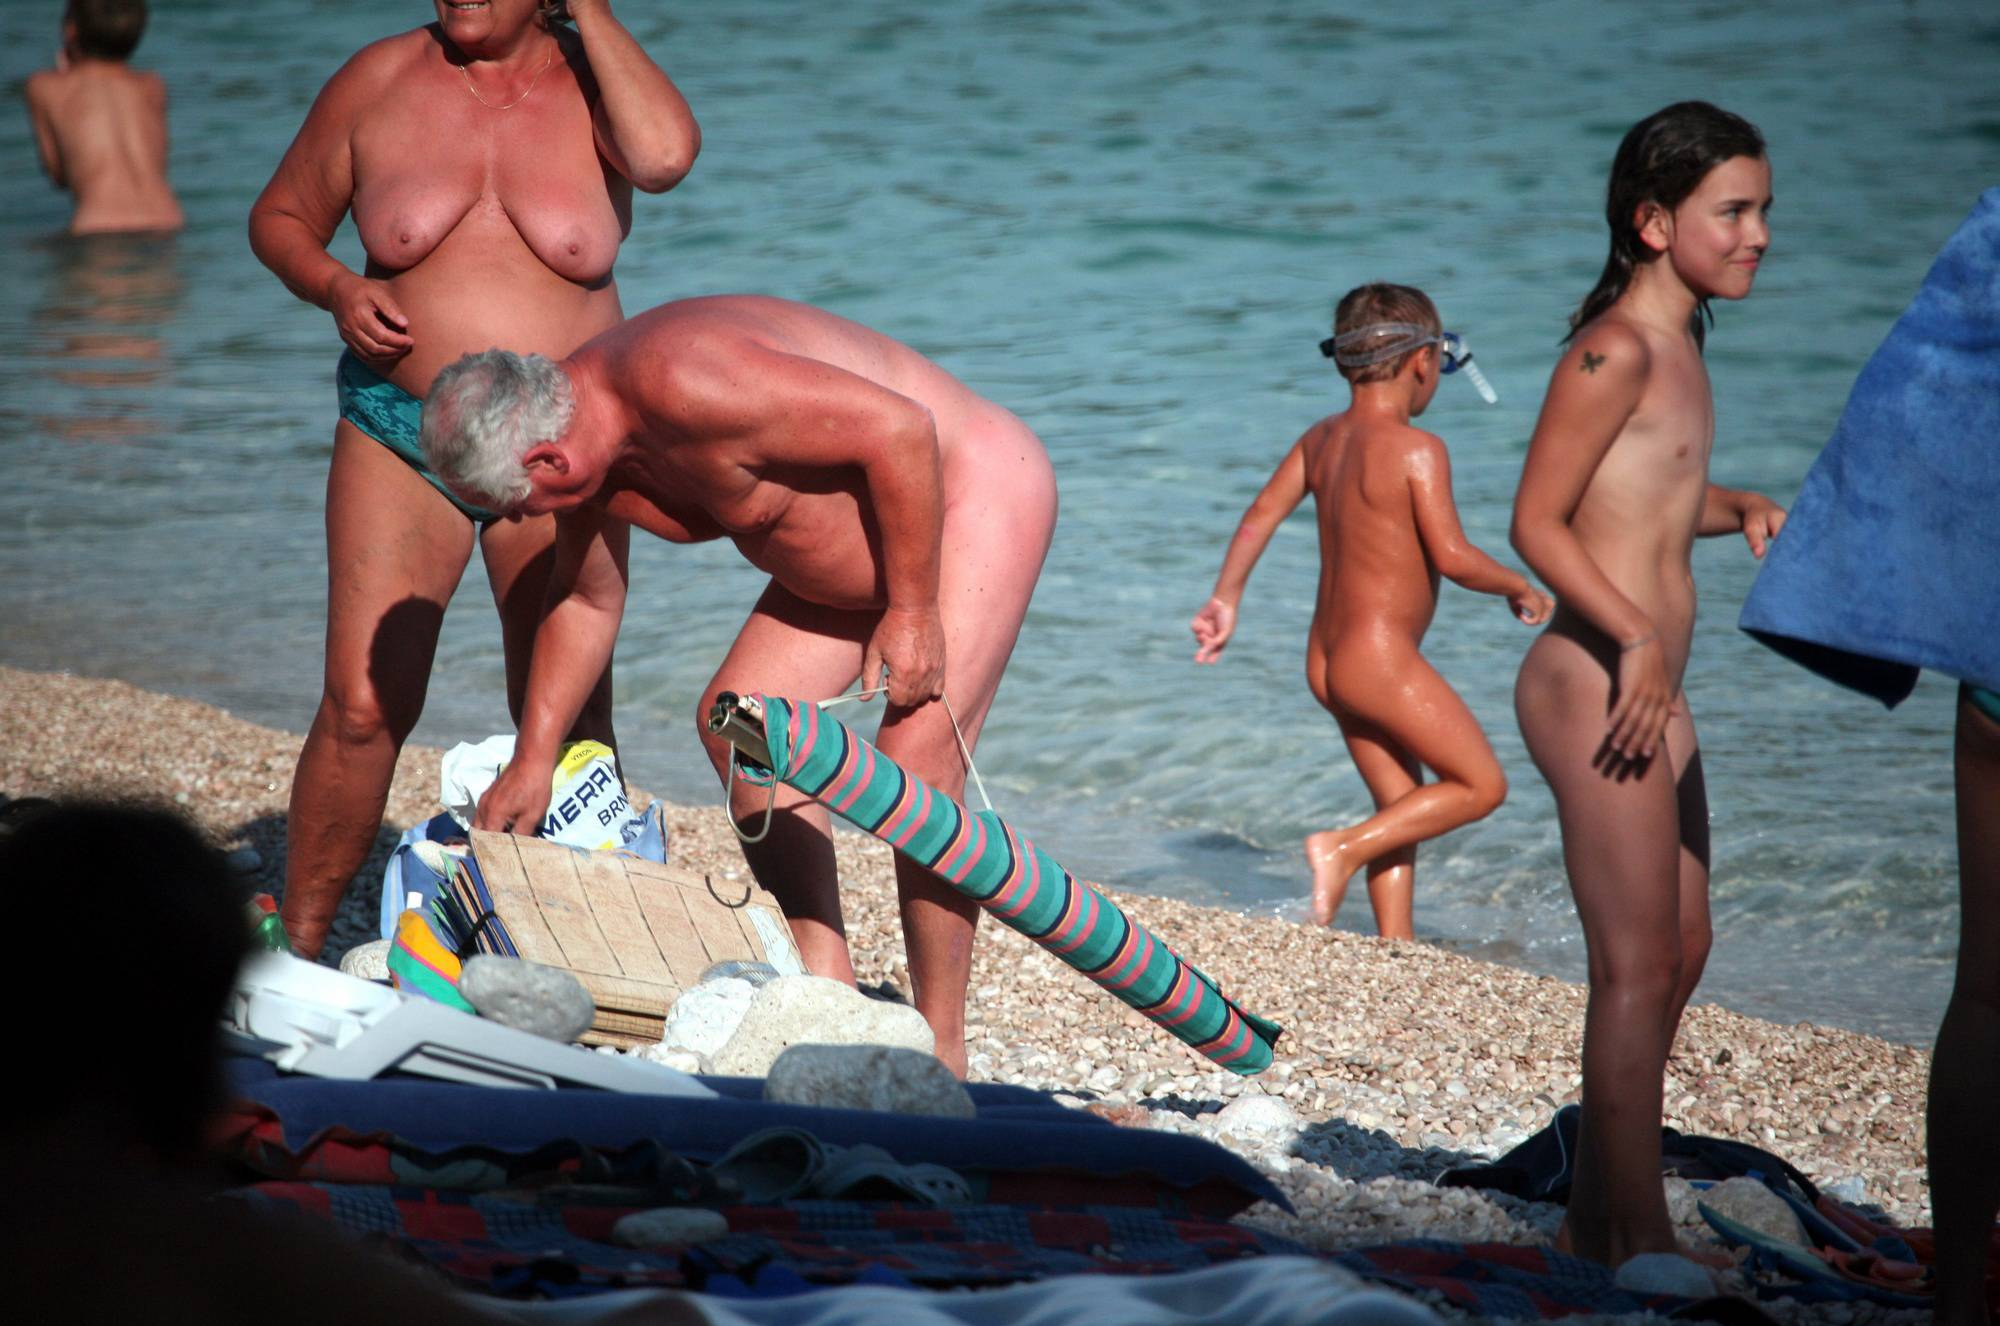 Pure Nudism Pics-Girl and Family Beach Side - 2